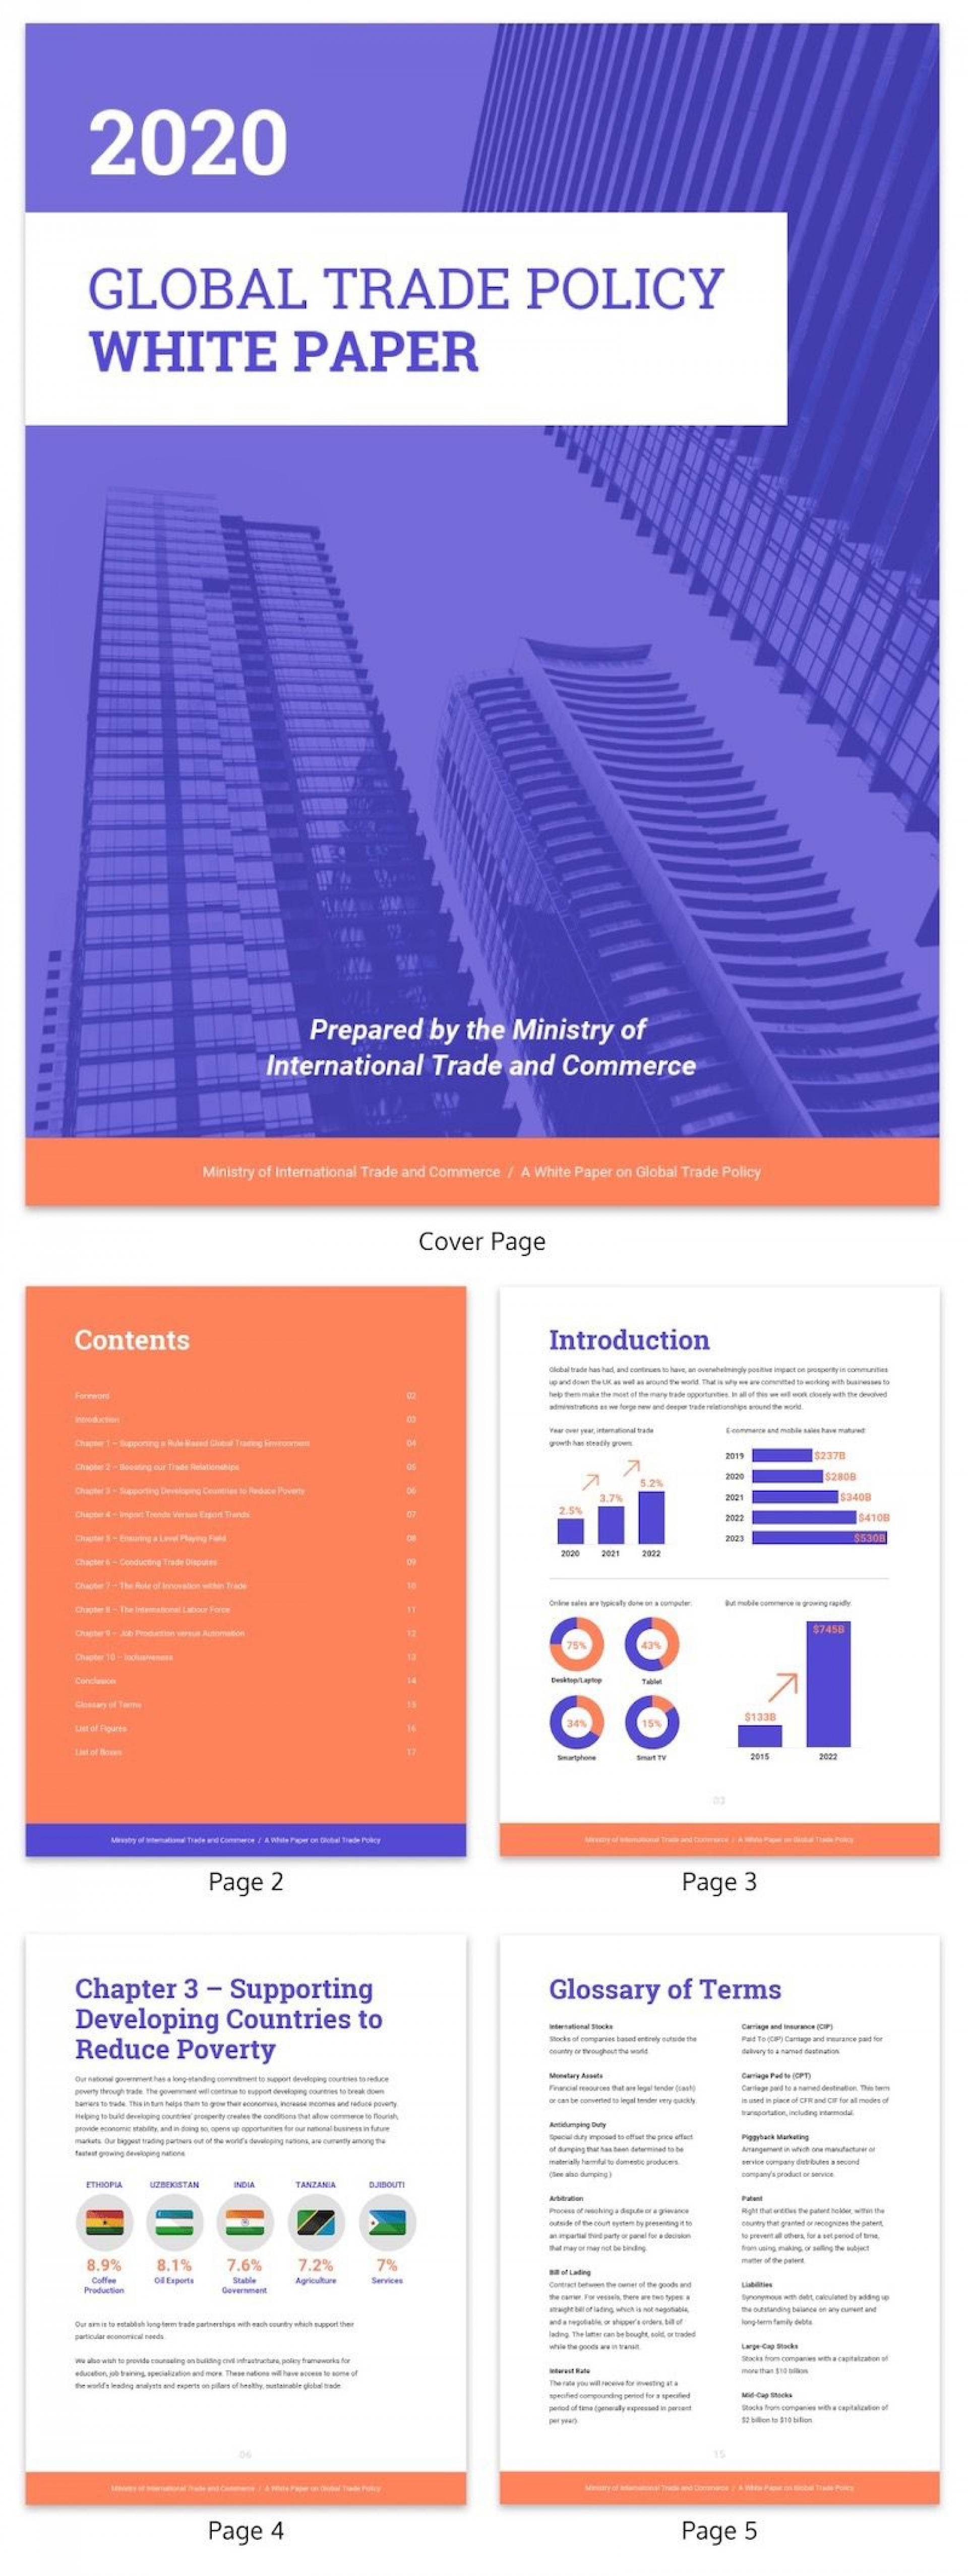 005 Unusual Technical White Paper Template Sample  Example Doc1920